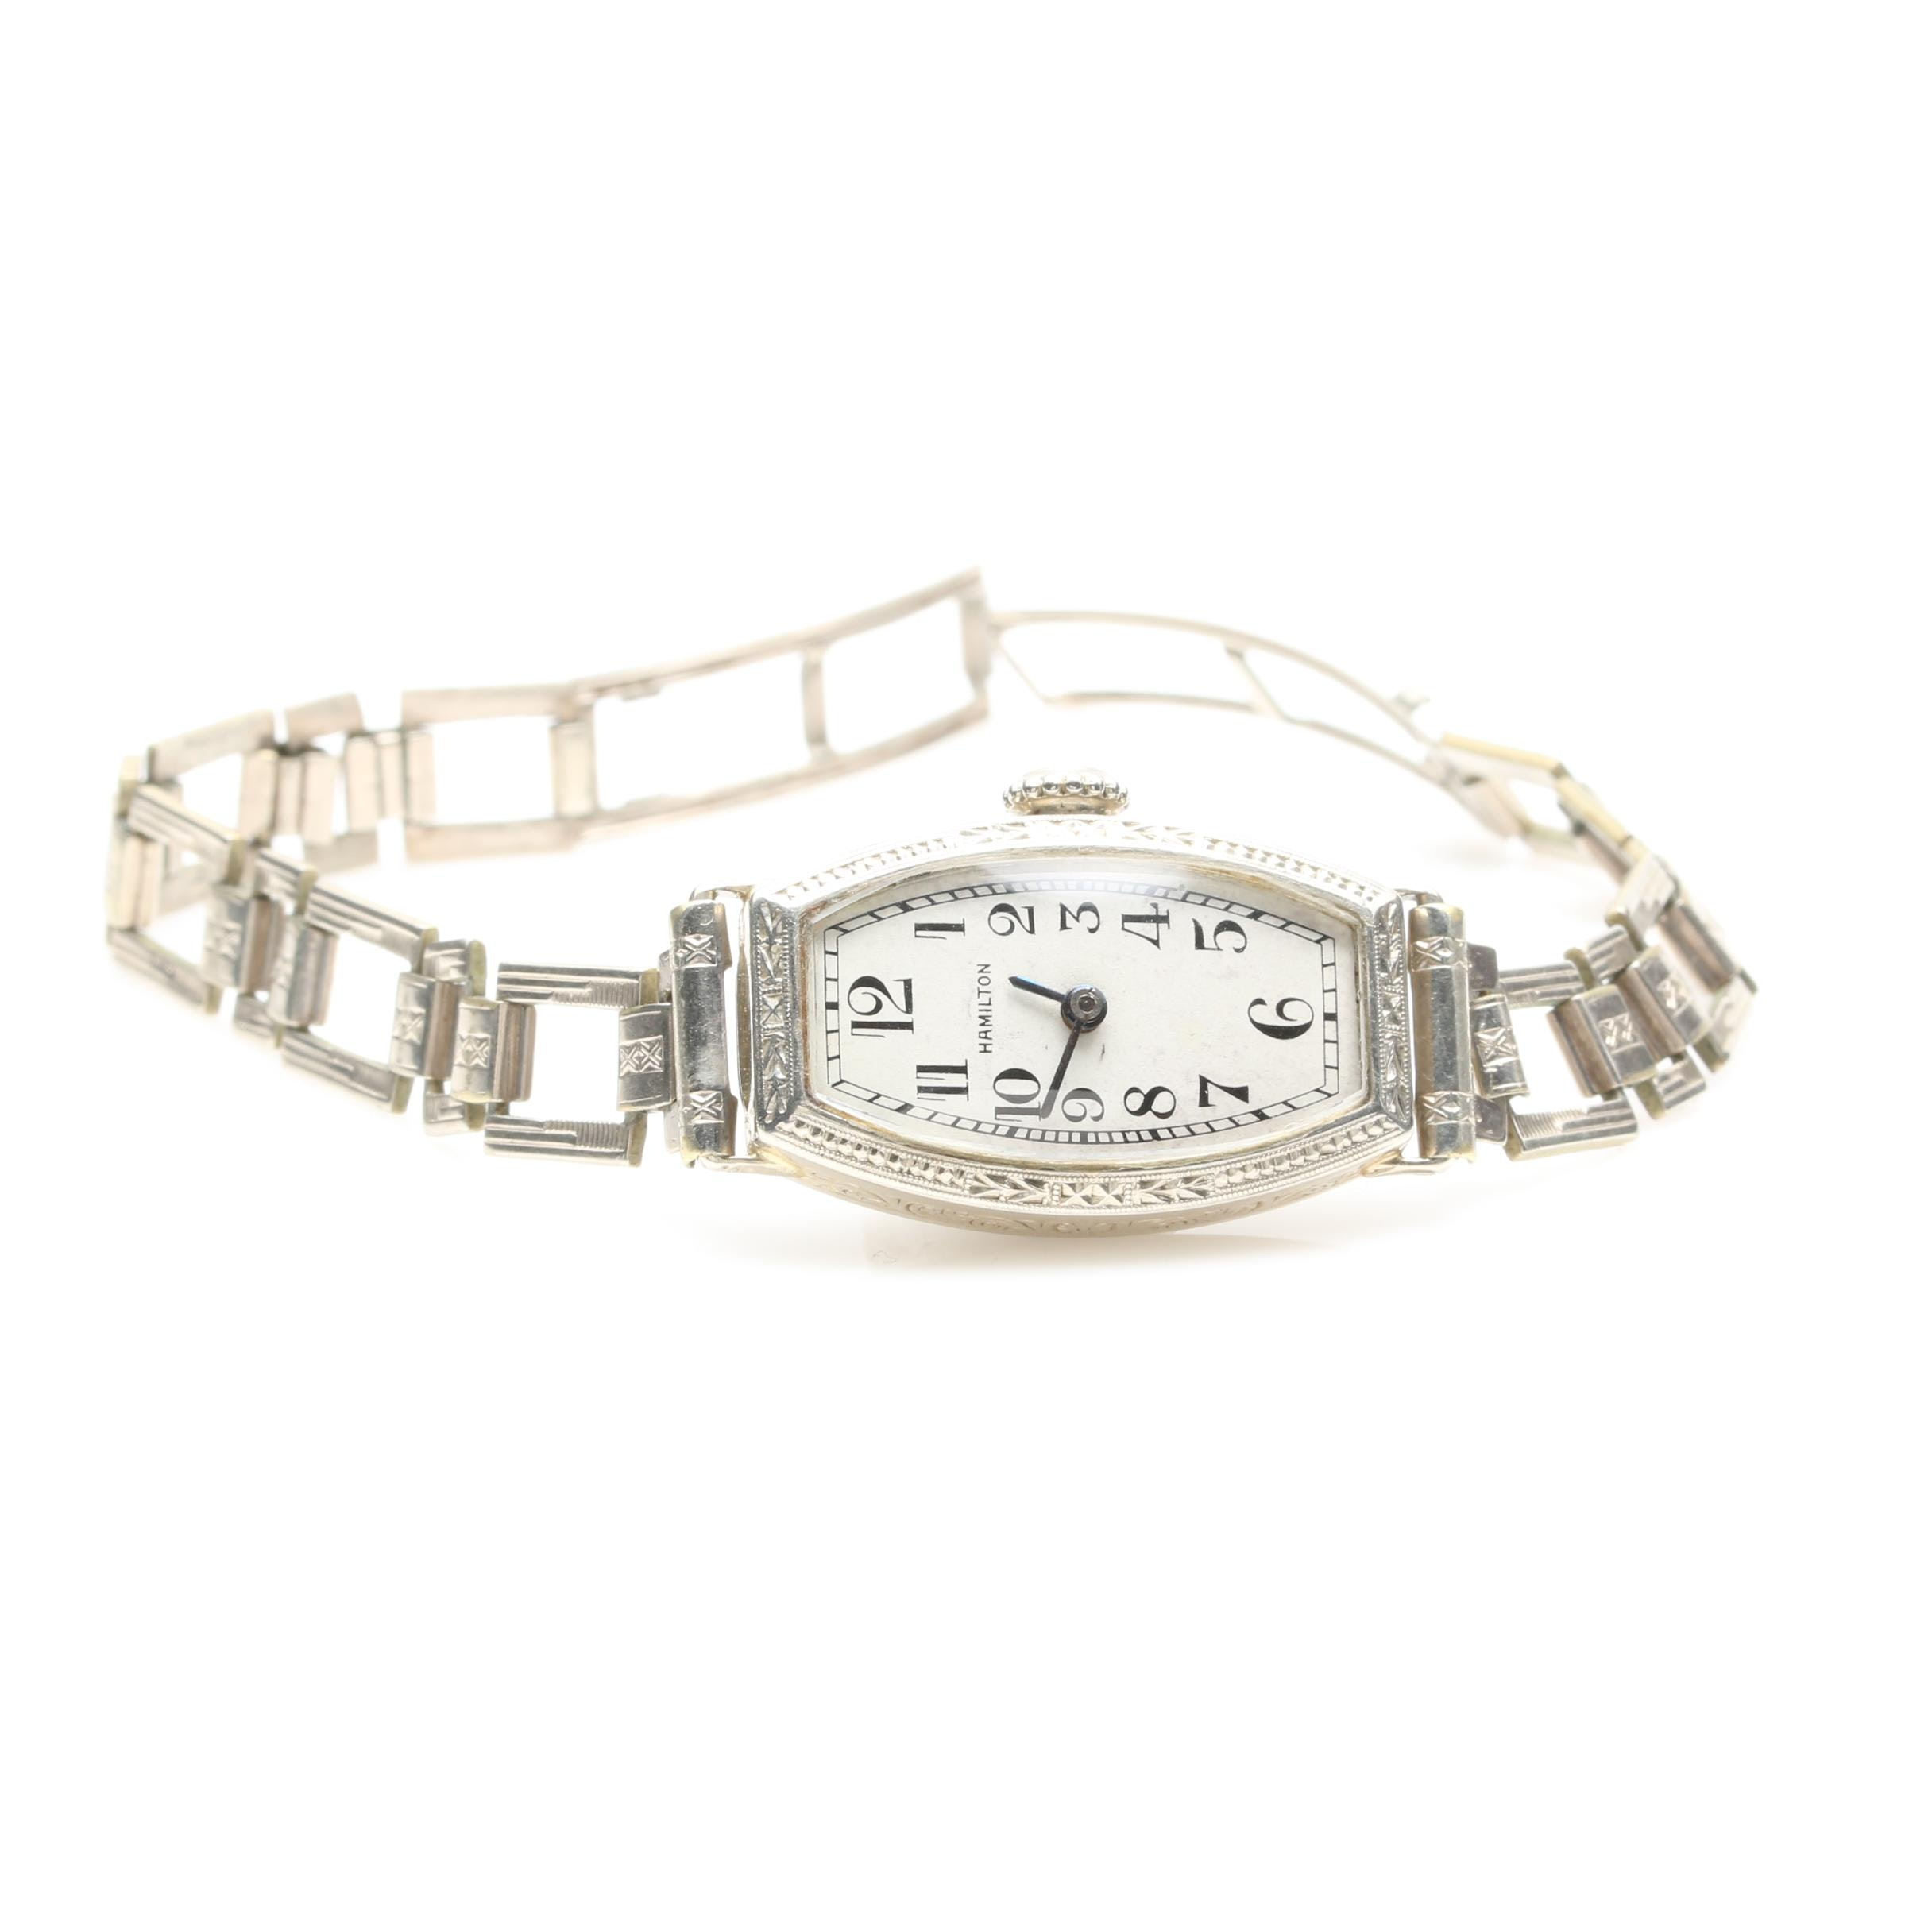 Hamilton 14K White Gold and 12K Gold Filled Wristwatch